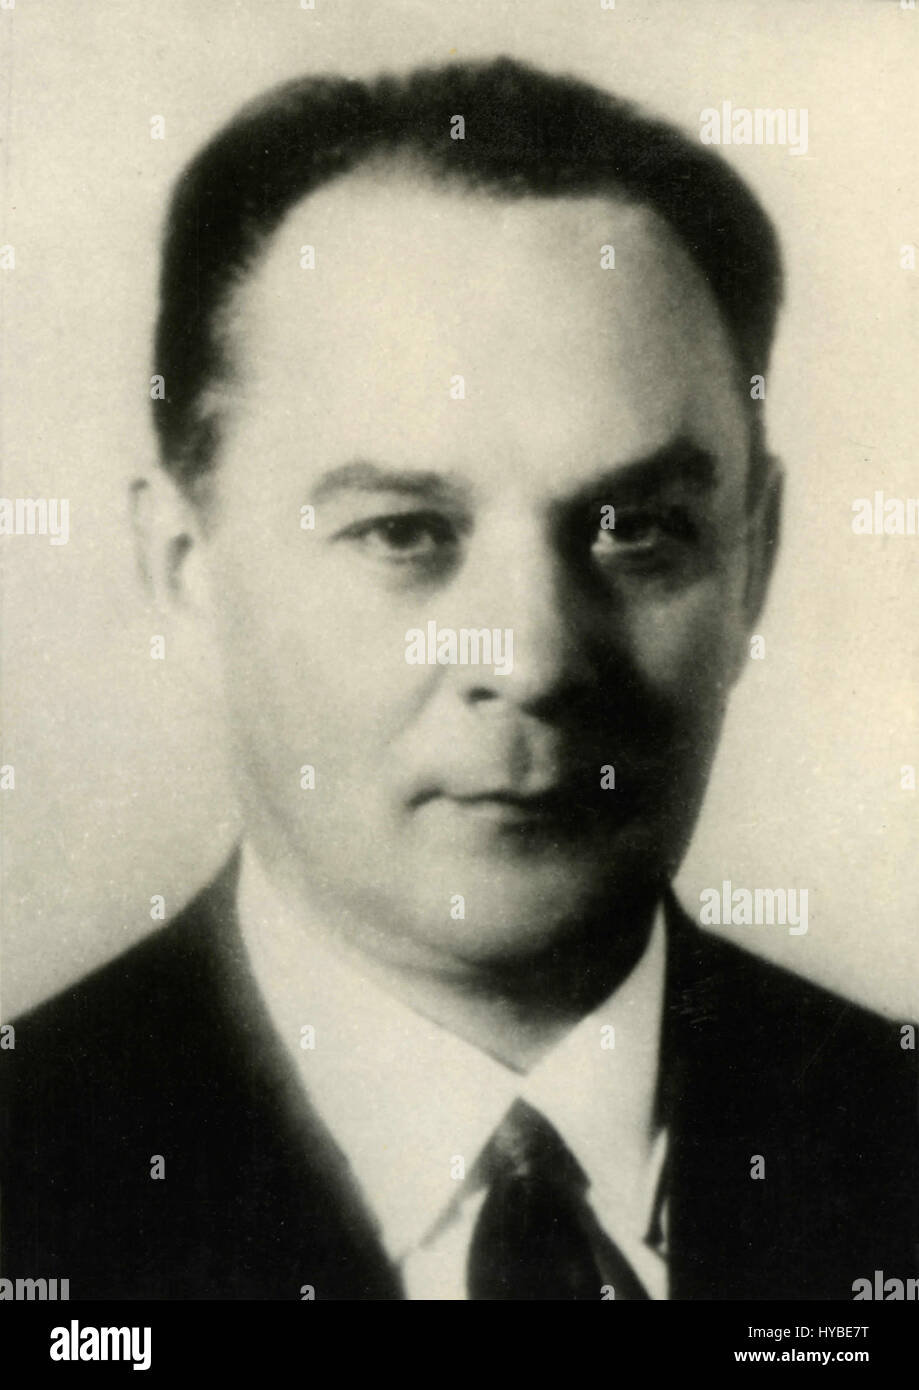 Mr. Shelepin, member of the Soviet Presidium, USSR - Stock Image